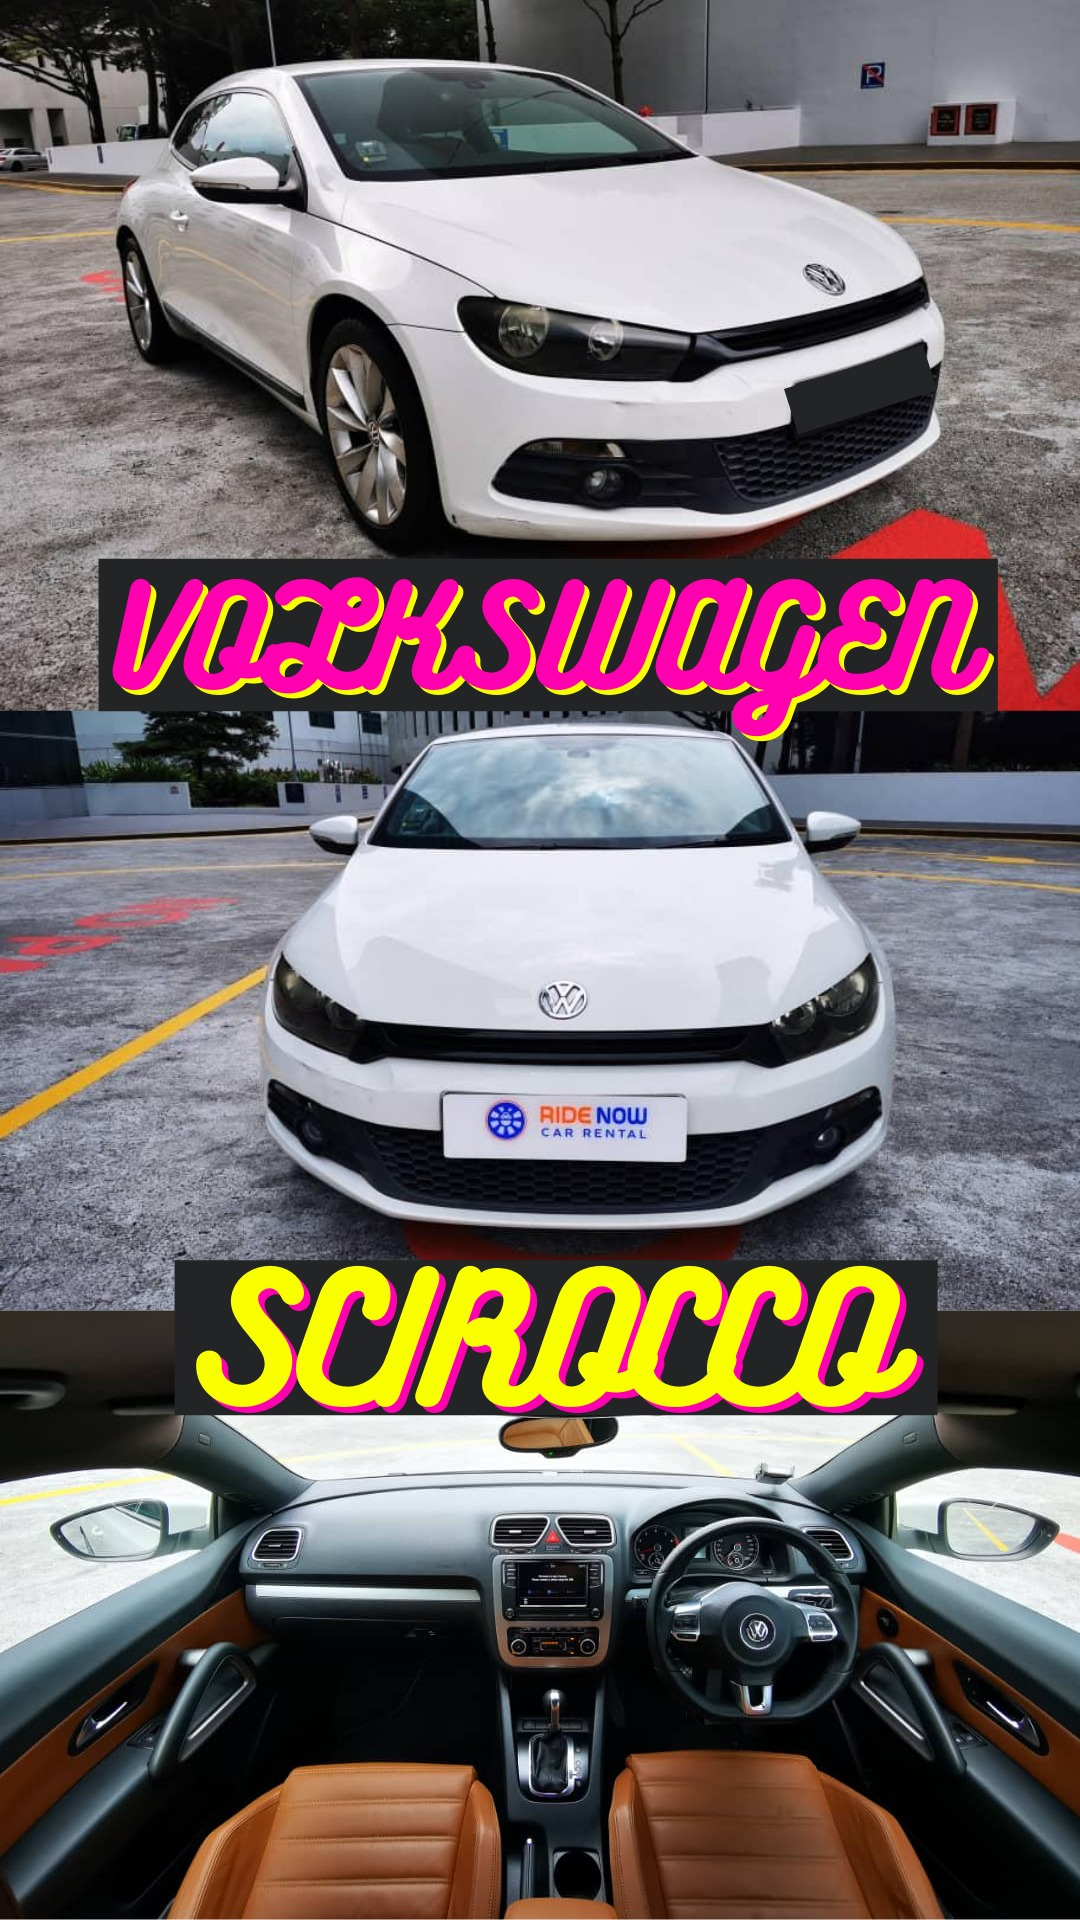 Volkswagen Scirocco 1.4A TSI Sporty Coupe that has the looks and speed. Perfect for dates. P plate welcomed!